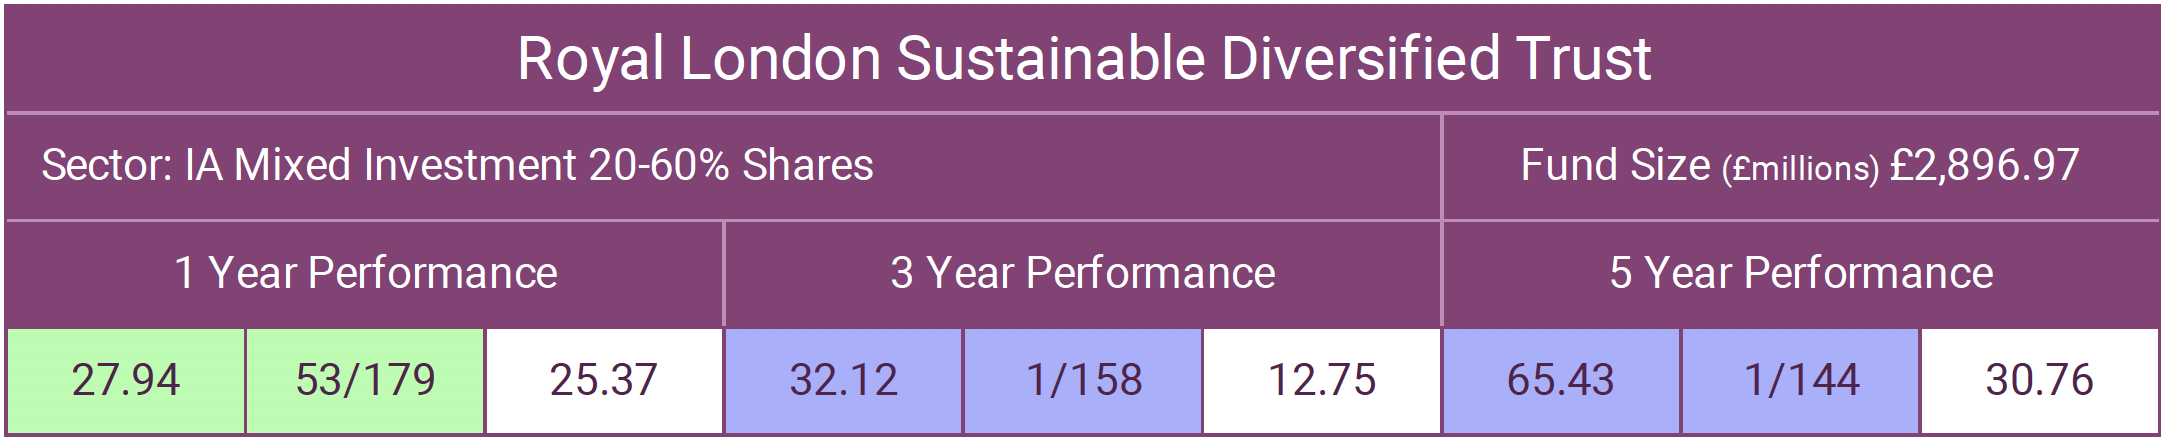 RL Sustainable Diversified Trust